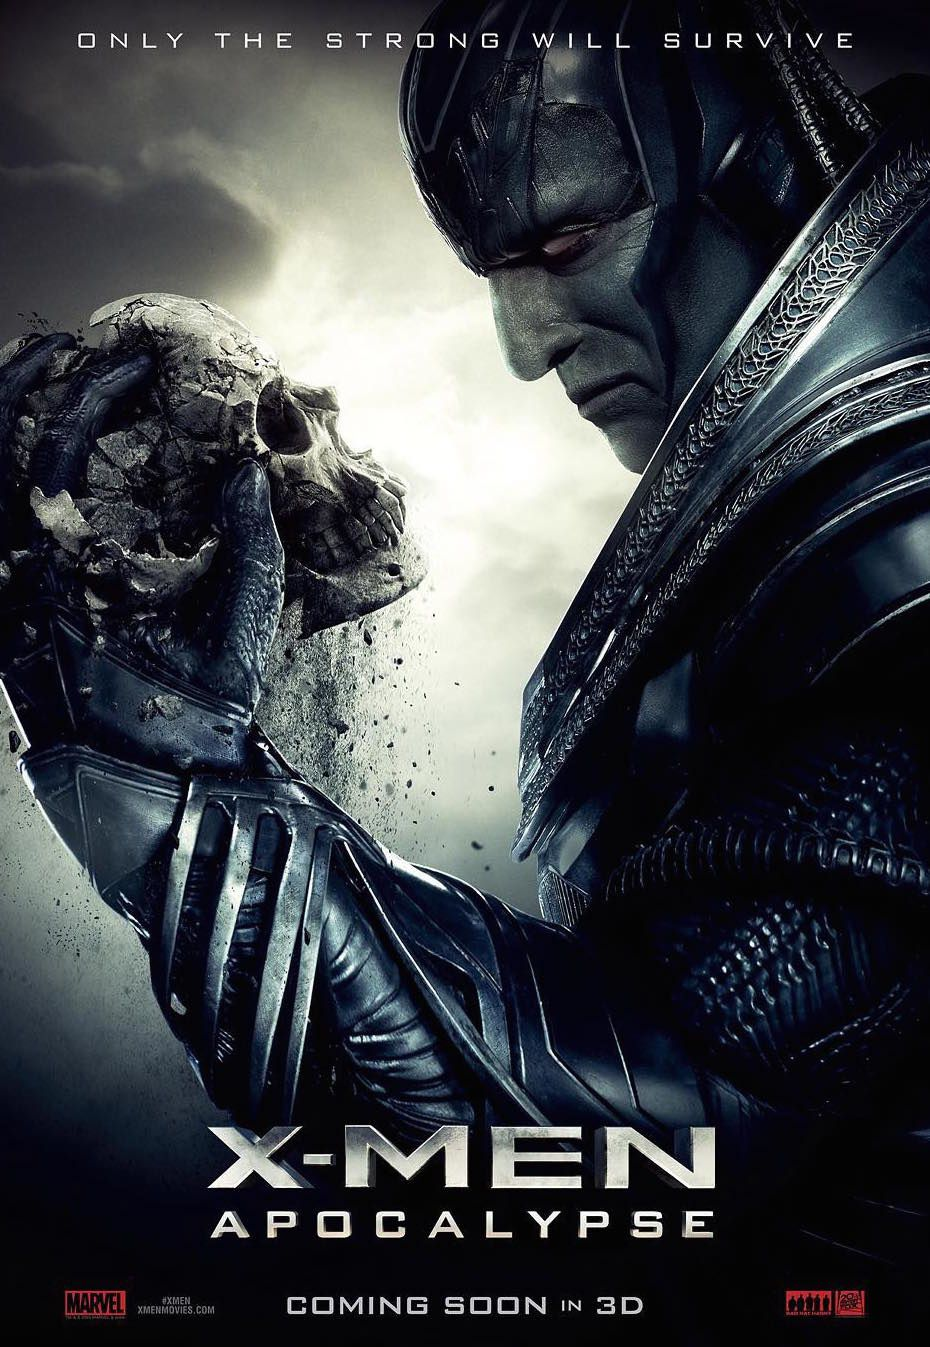 X-MEN APOCALYPSE - Spot Superbowl VO